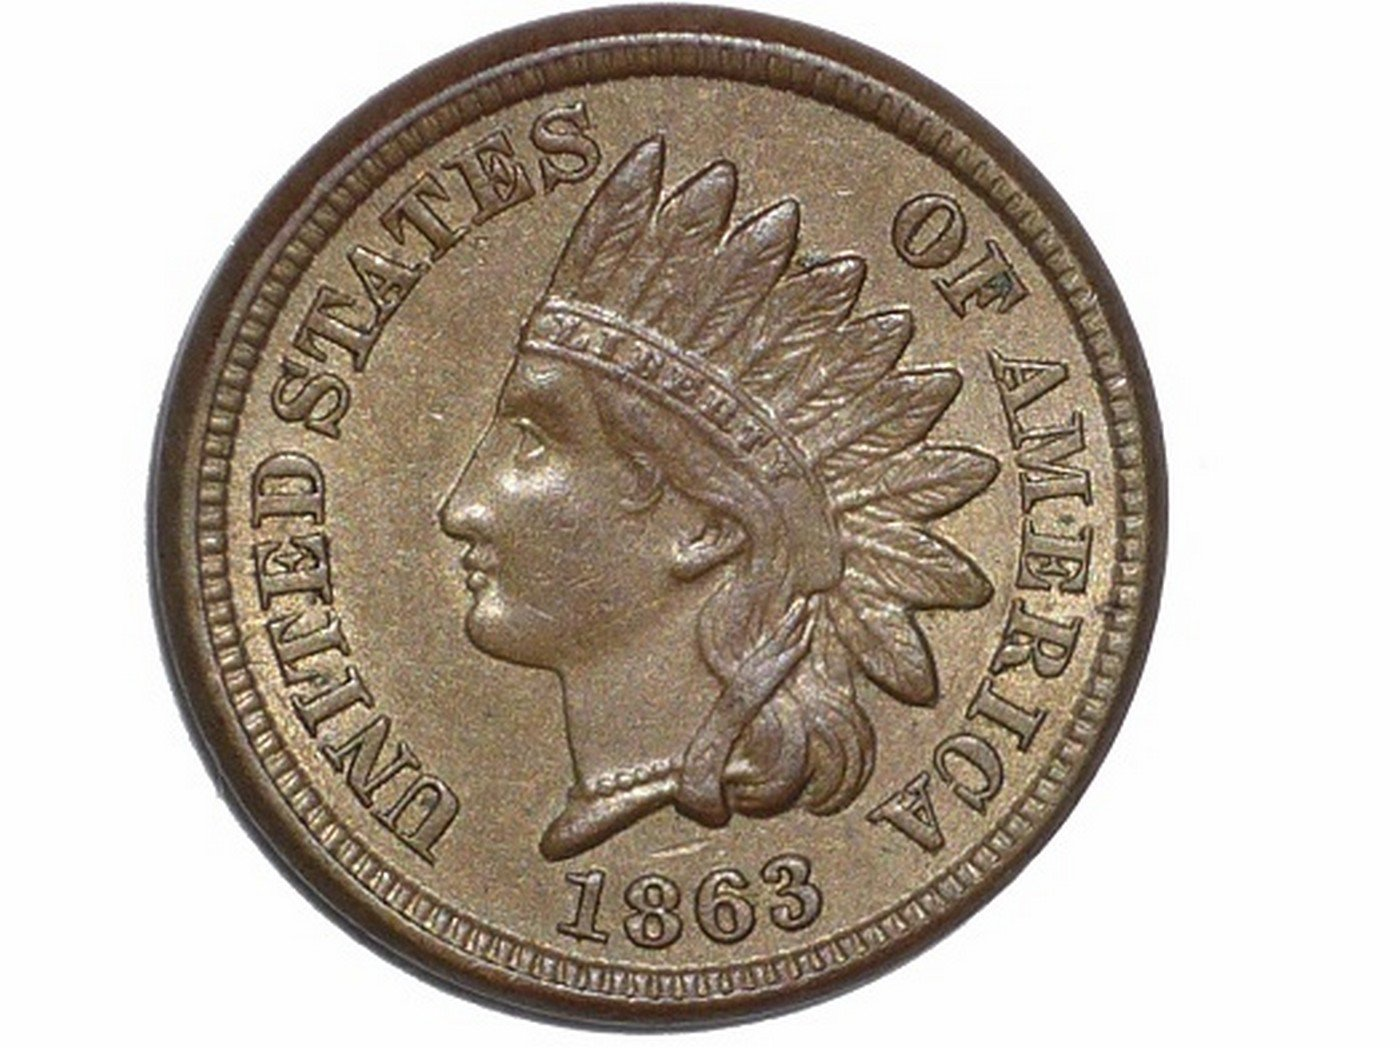 1863 Obverse of ODD-008, CUD-019 - Indian Head Penny - Photo by David Poliquin